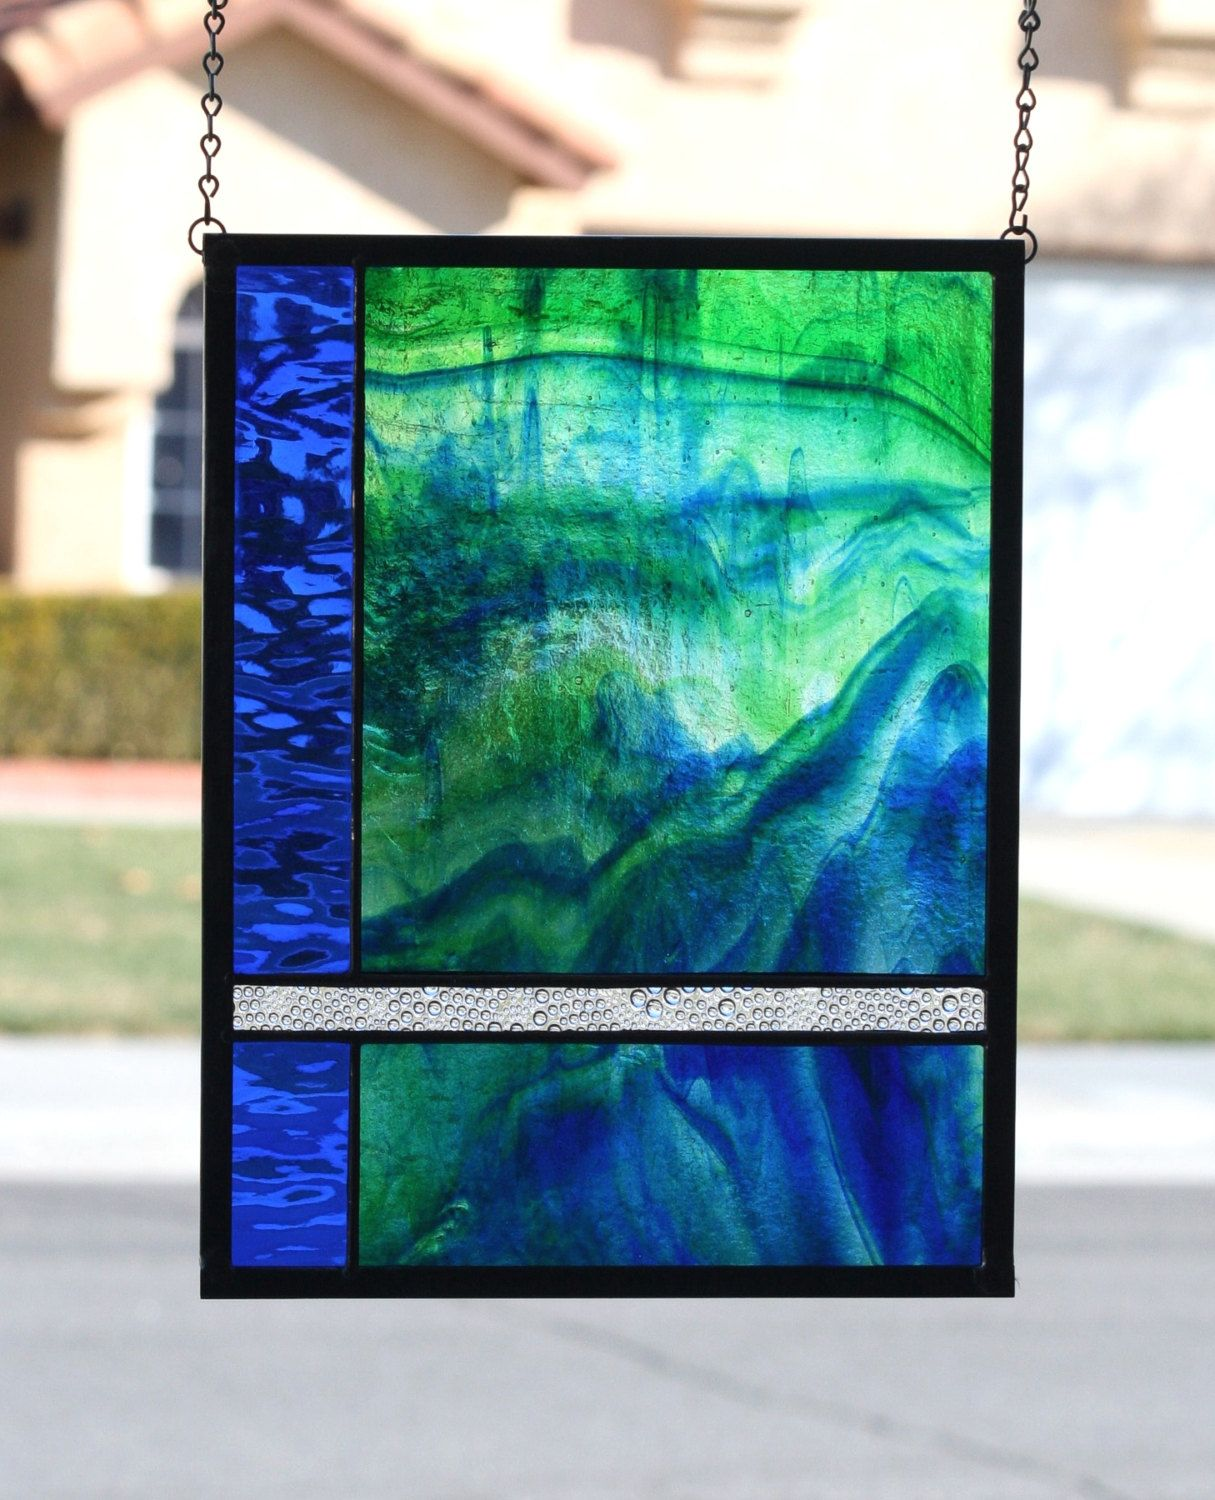 OCEAN TIDES - Abstract Stained Glass Window Panel with Sea Colors